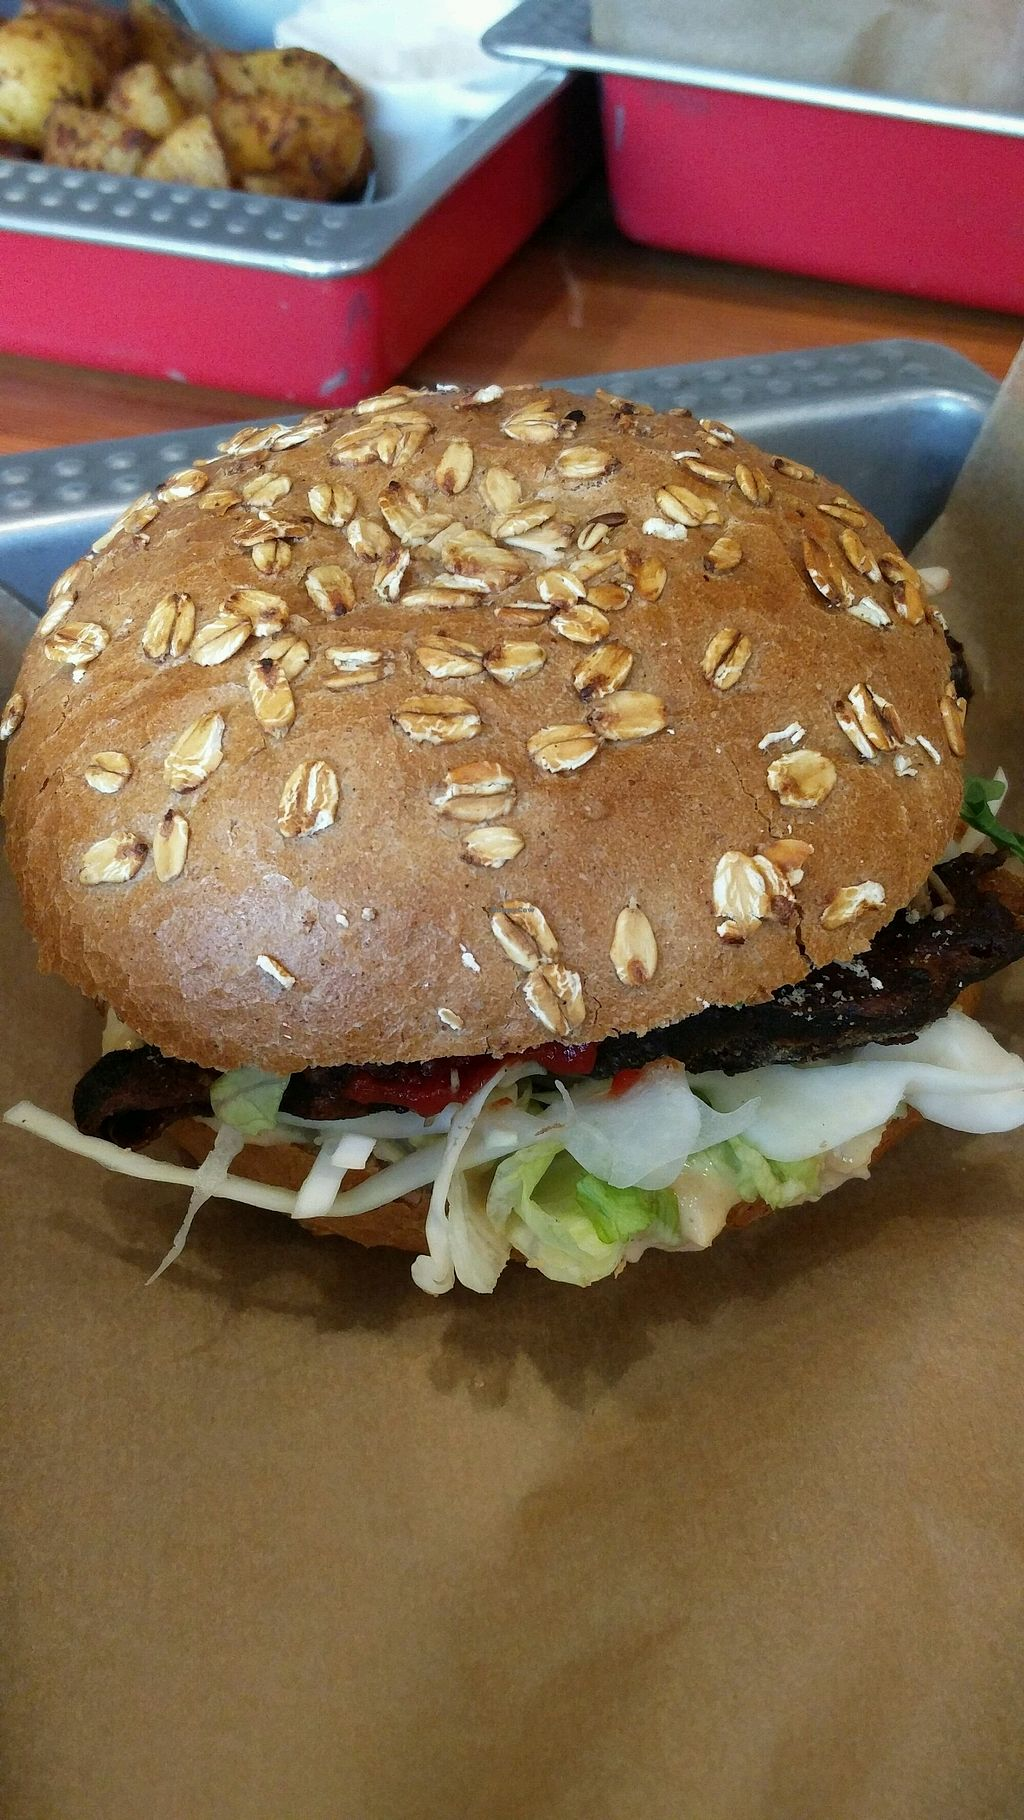 """Photo of Chwast Food  by <a href=""""/members/profile/Harp"""">Harp</a> <br/>Seitan hamburger <br/> November 4, 2017  - <a href='/contact/abuse/image/52782/321696'>Report</a>"""